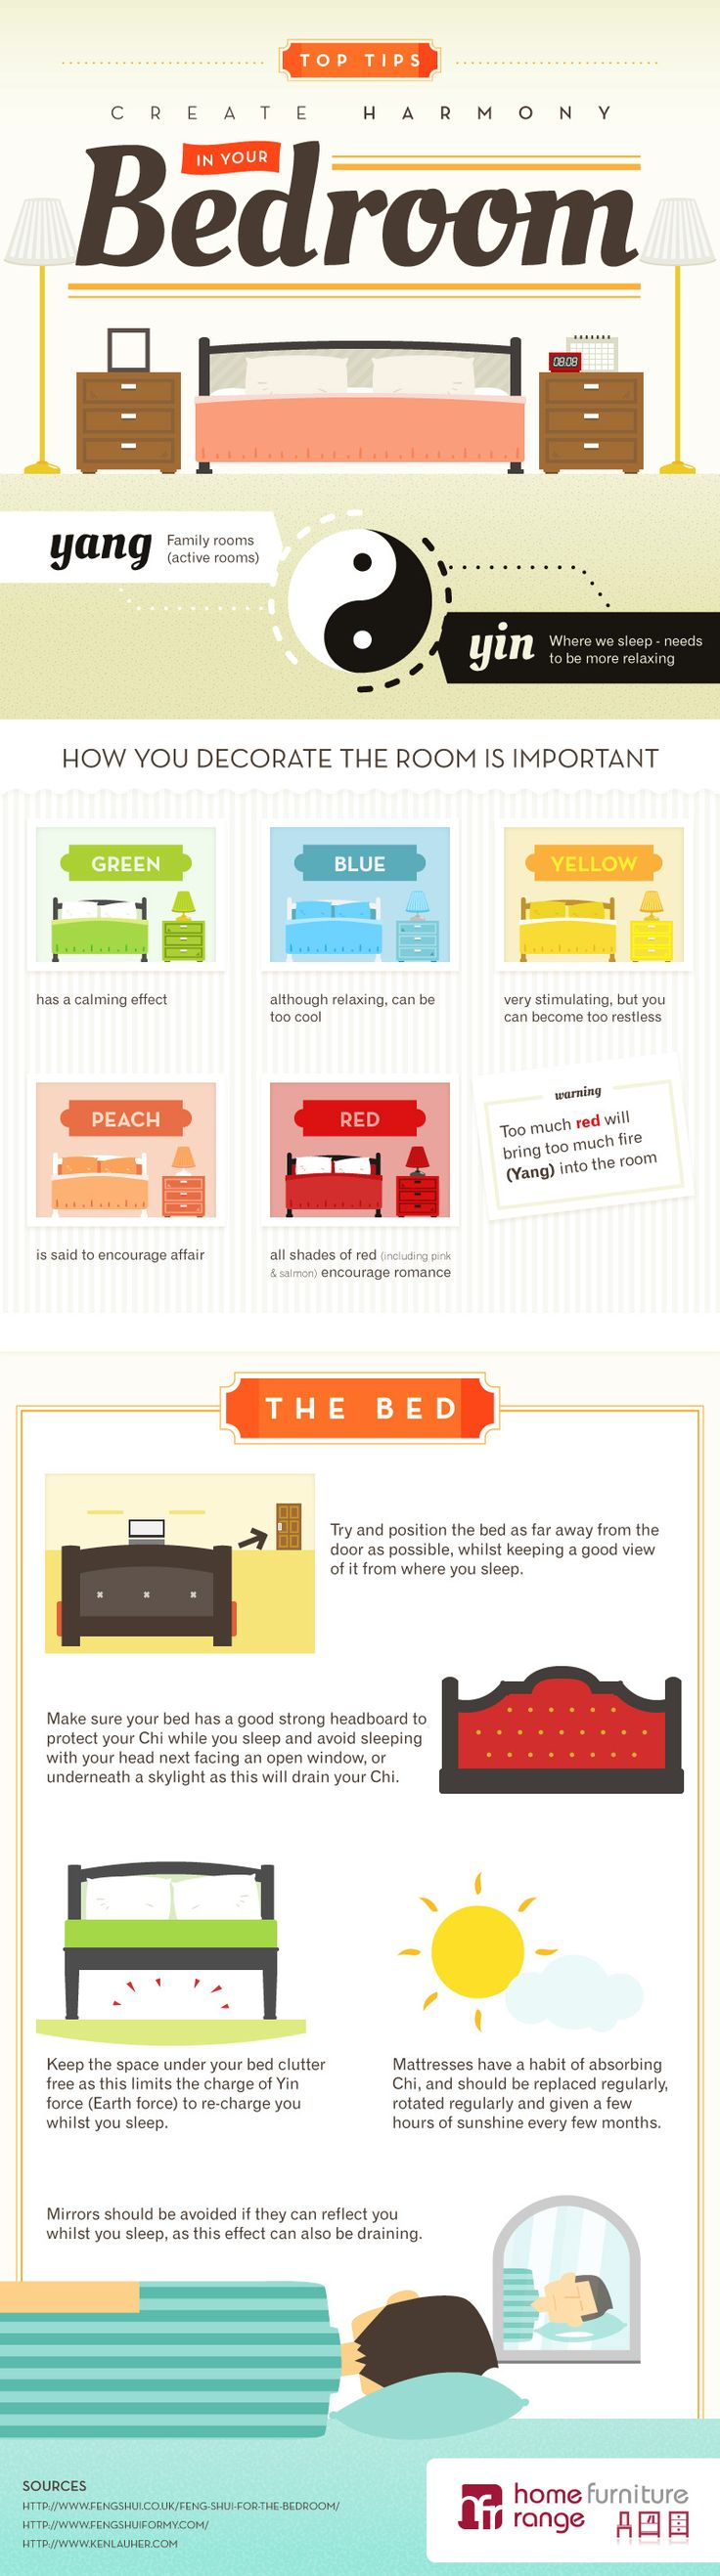 Small Bedroom Feng Shui 17 Best Ideas About Feng Shui On Pinterest Feng Shui Tips How